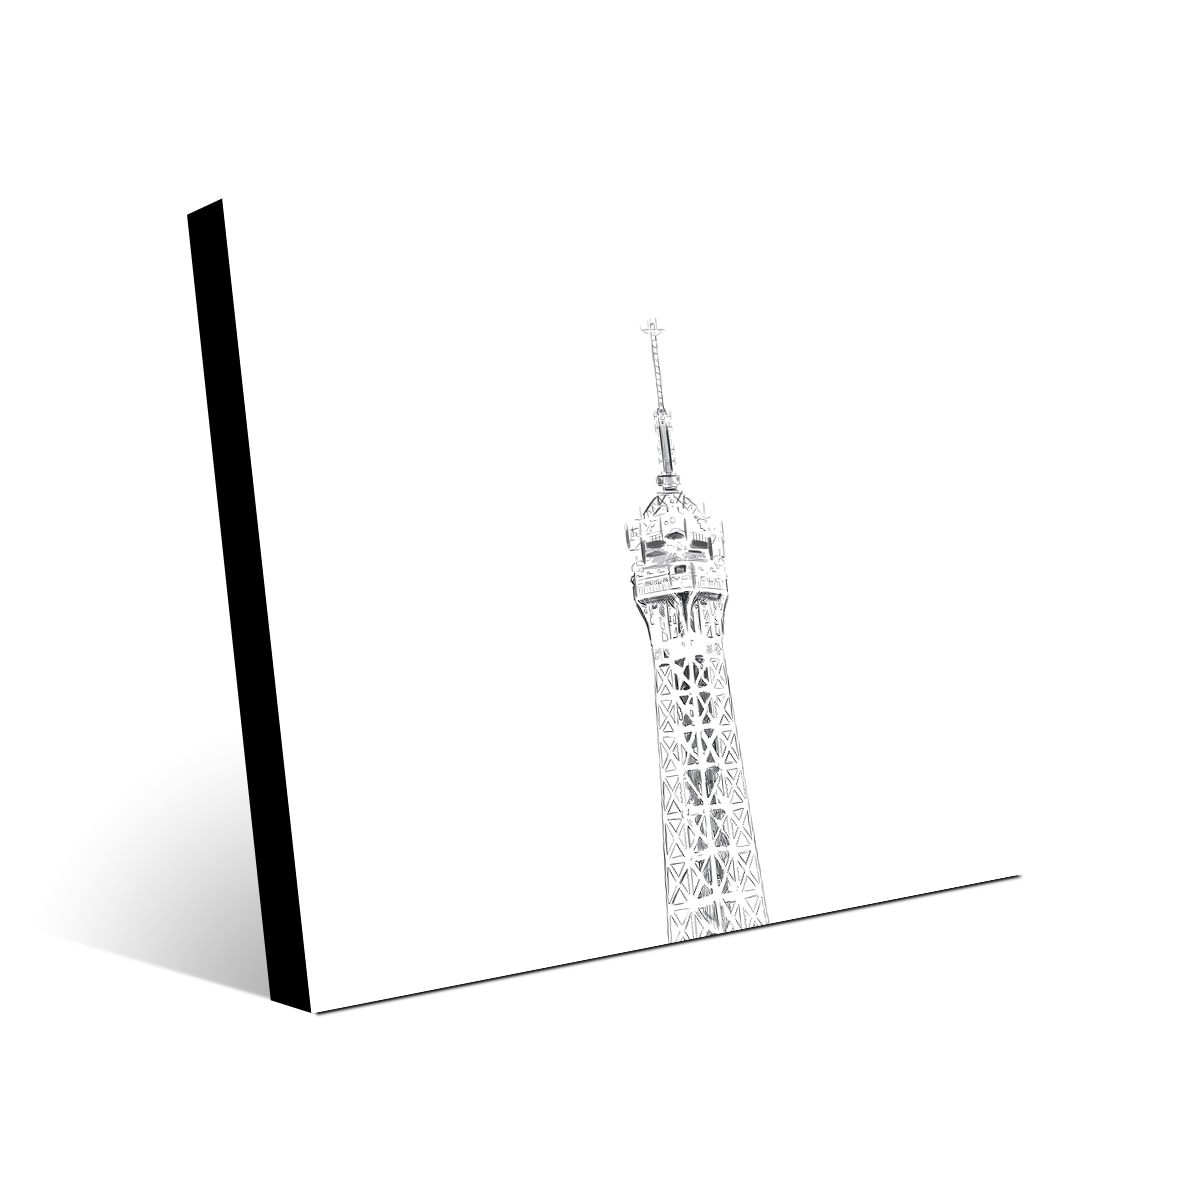 Shop Kathy Ireland Triptych Eiffel Tower Drawing Top On Metal Wall Art Print Overstock 30957061